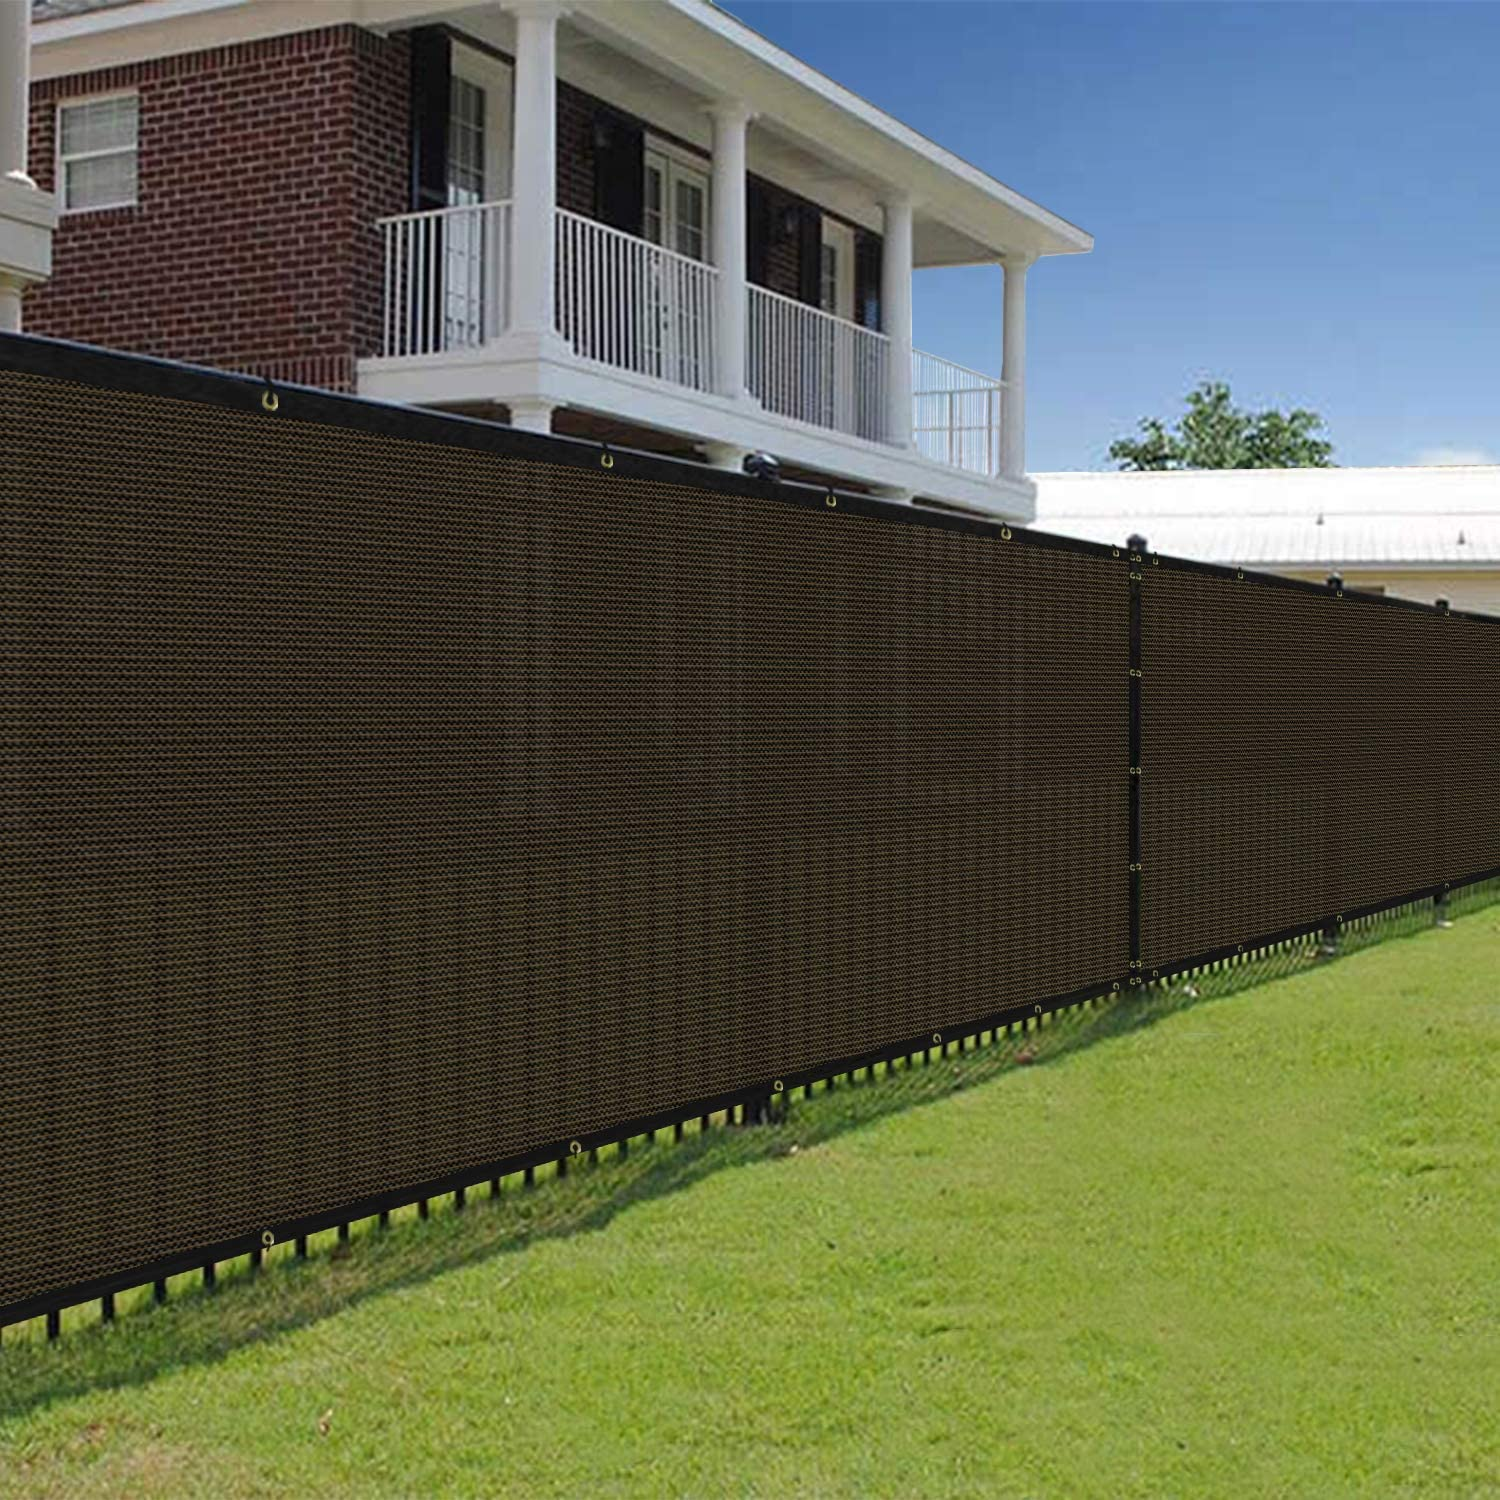 E&K Sunrise 4' x 50' Brown Fence Privacy Screen, Commercial Outdoor Backyard Shade Windscreen Mesh Fabric 90% Blockage 3 Years Warranty (Customized Set of 1